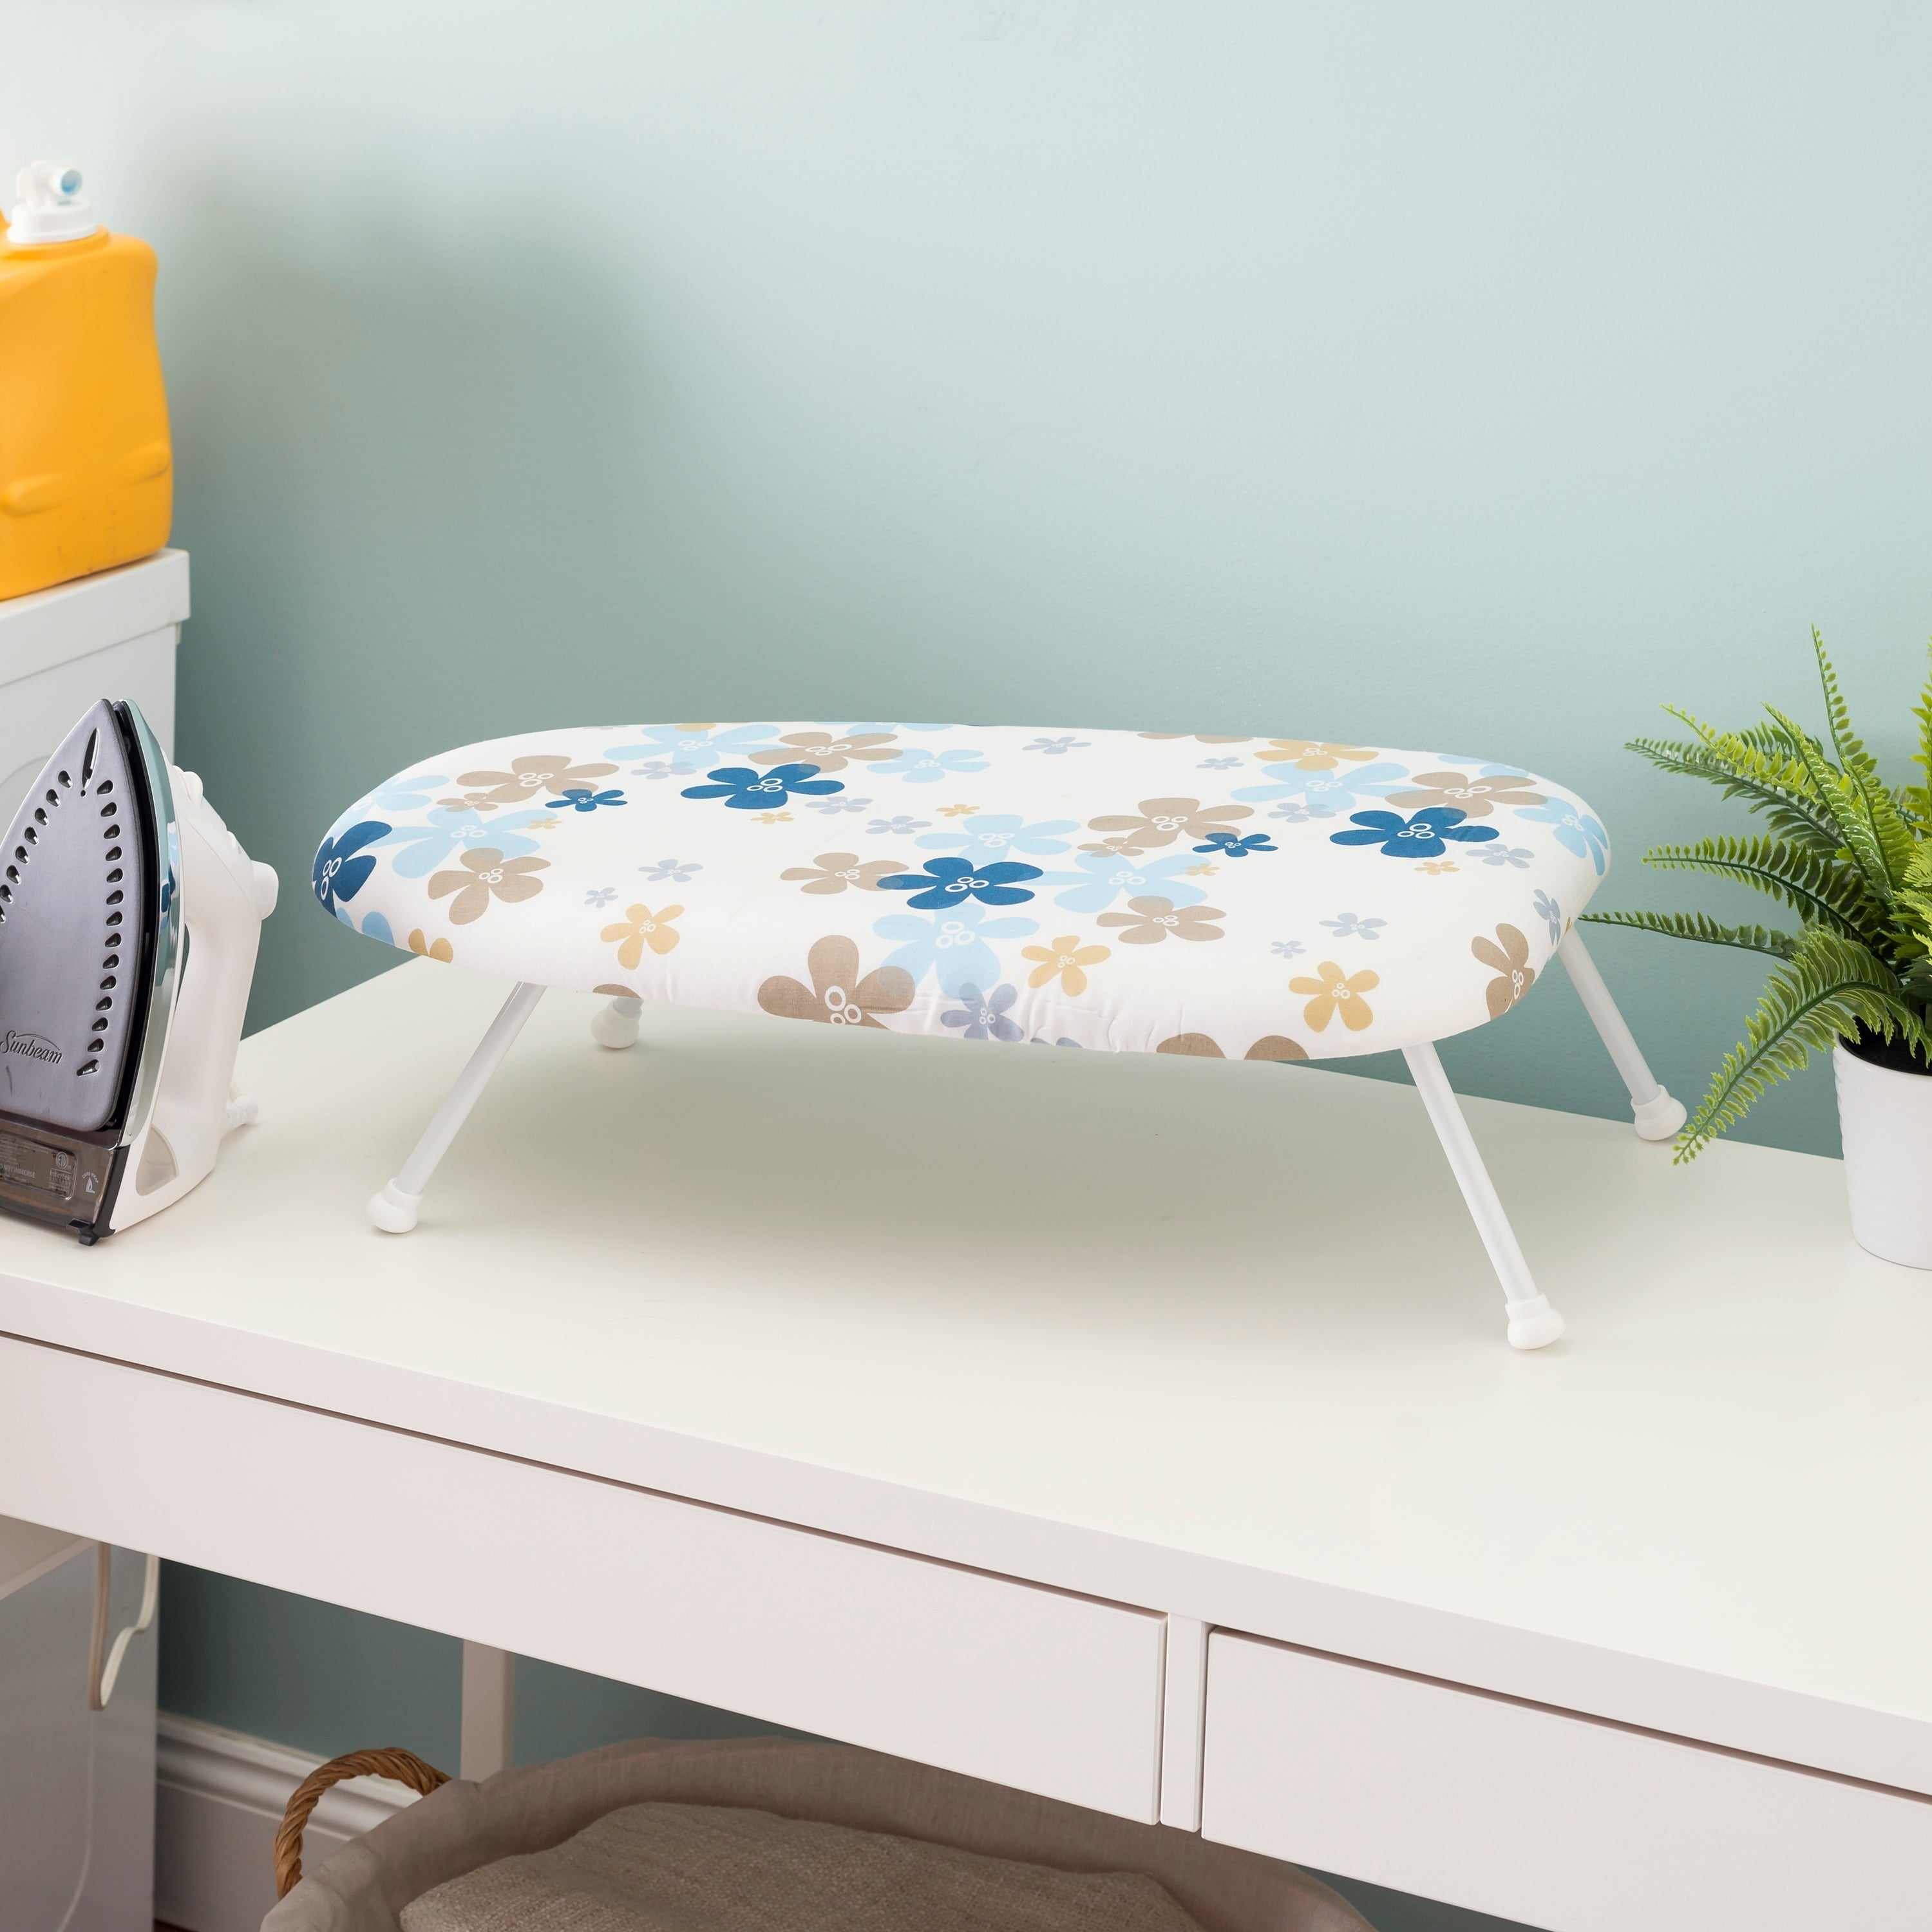 Sunbeam Tabletop Ironing Board With Removable And Washable Cover Overstock 28123472